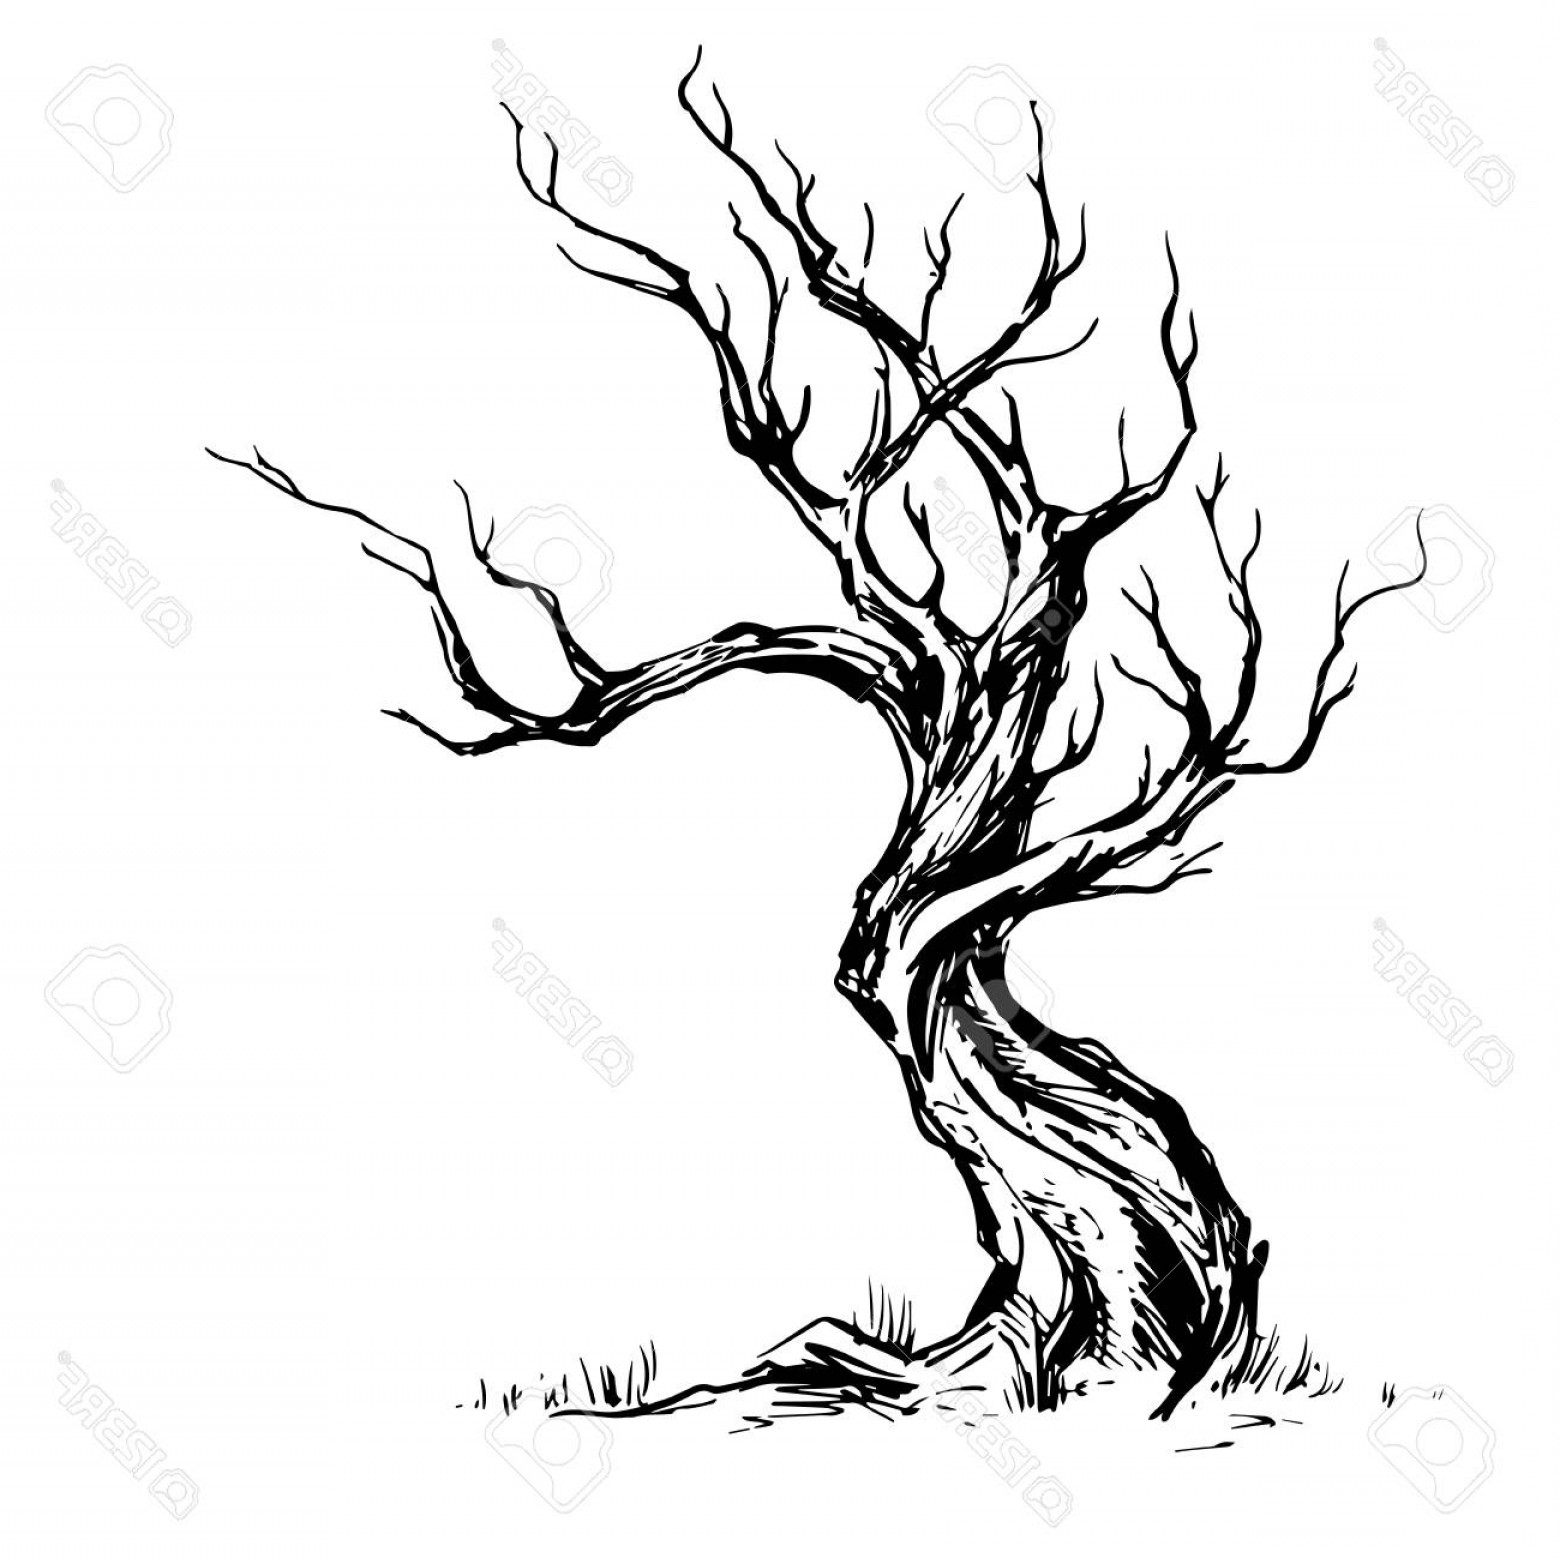 1560x1558 Photostock Vector Hand Sketched Illustration Of Old Crooked Tree